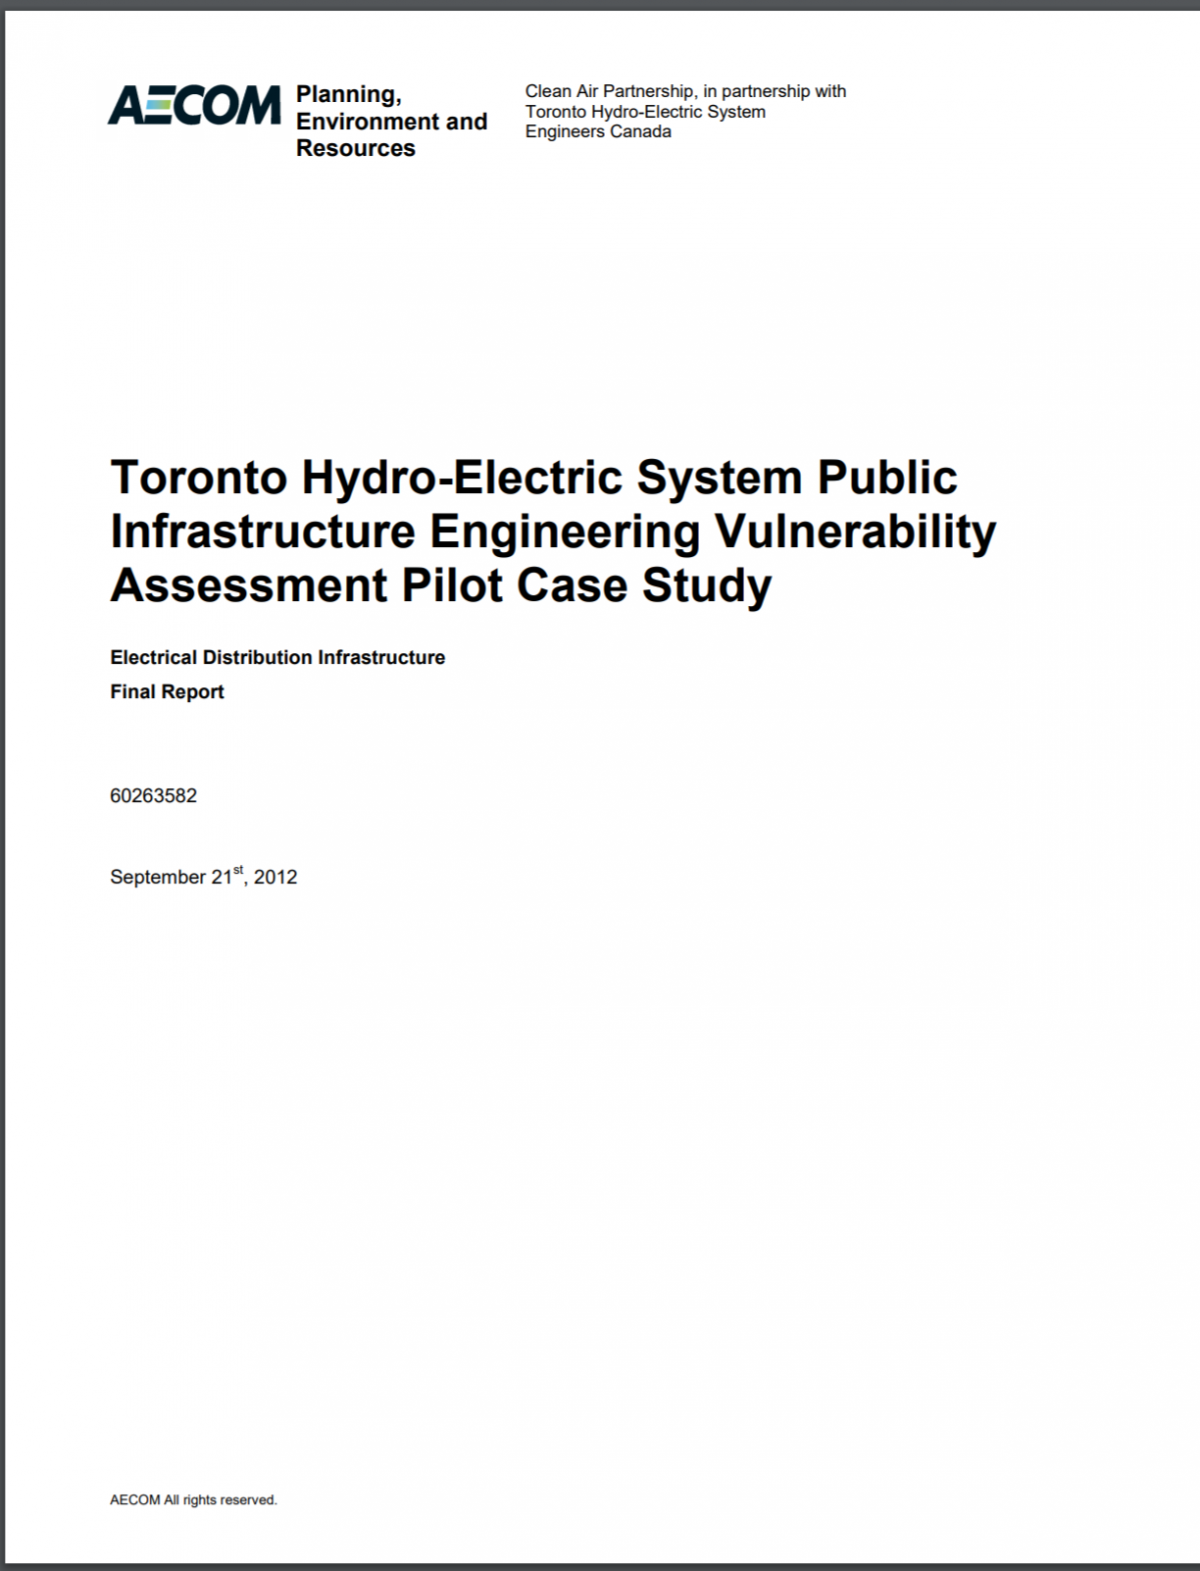 Toronto Hydro-Electric System Public Infrastructure Engineering Vulnerability Assessment Pilot Case Study